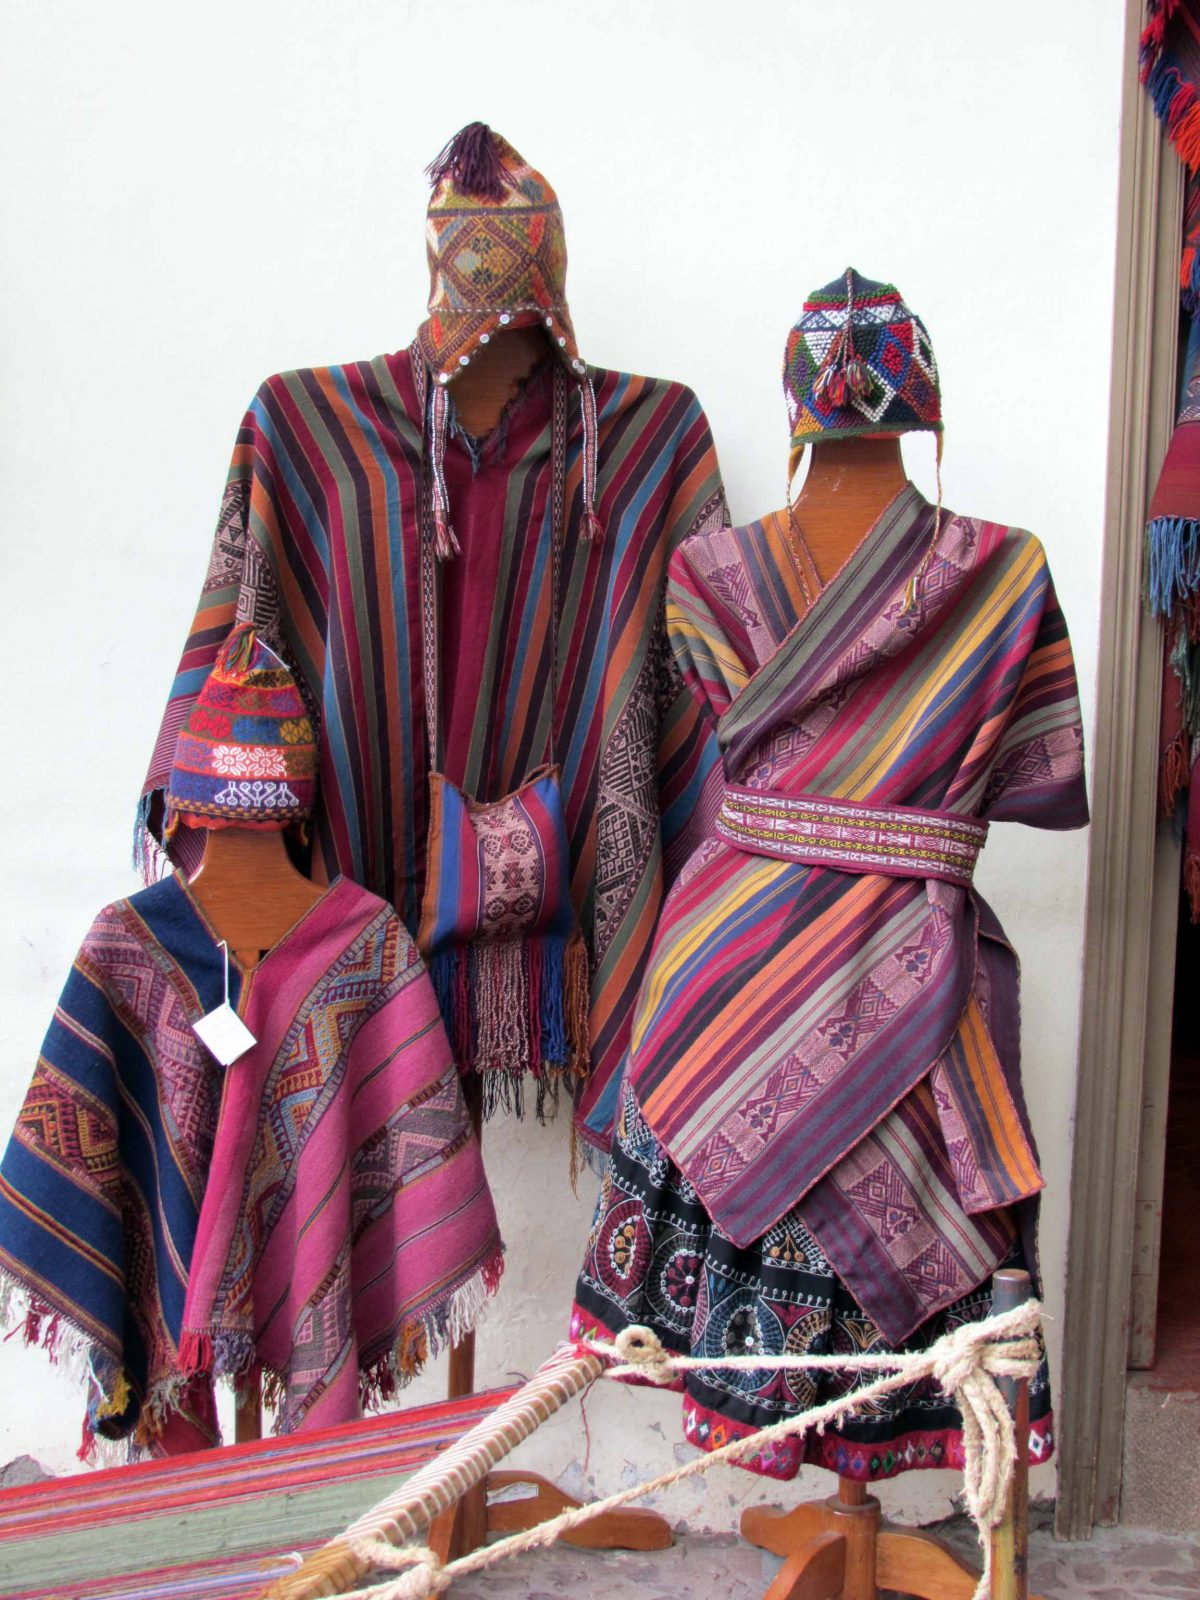 Samples of work for sale; The Center for Traditional Textiles of Cusco, Peru | ©Angela Drake